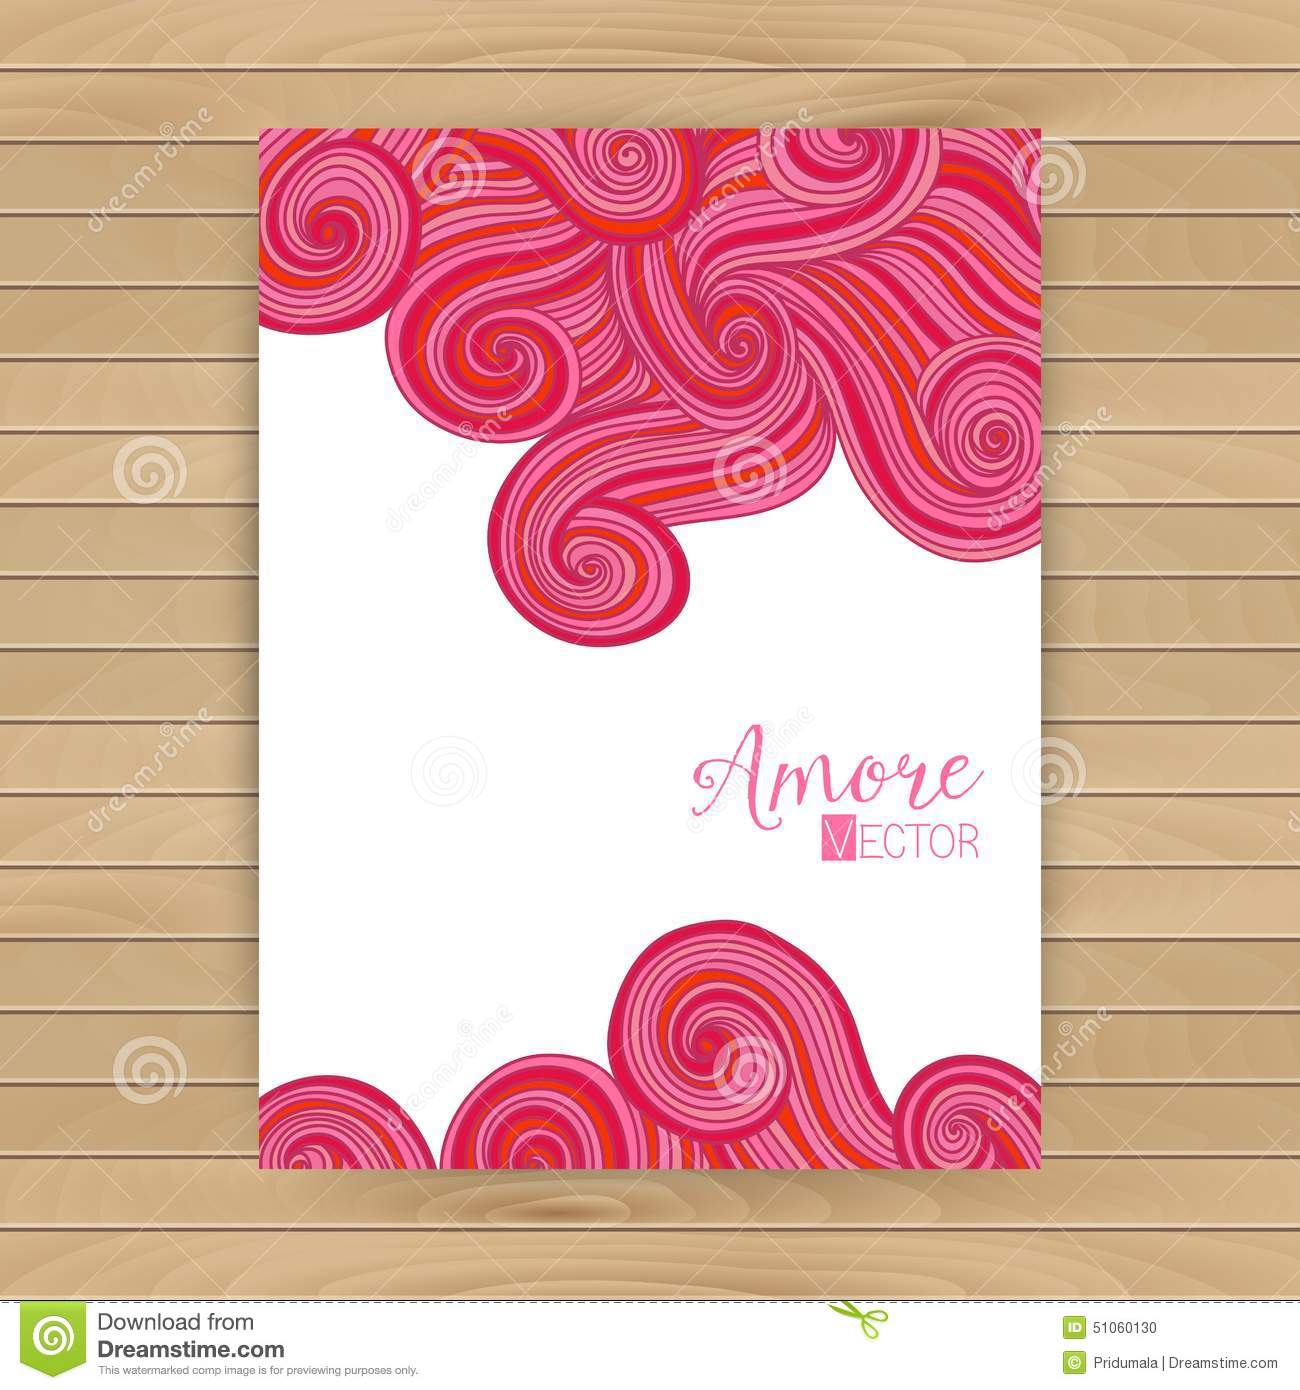 Abstract Invitation Card With Abstract Wave Template Wavy Frame